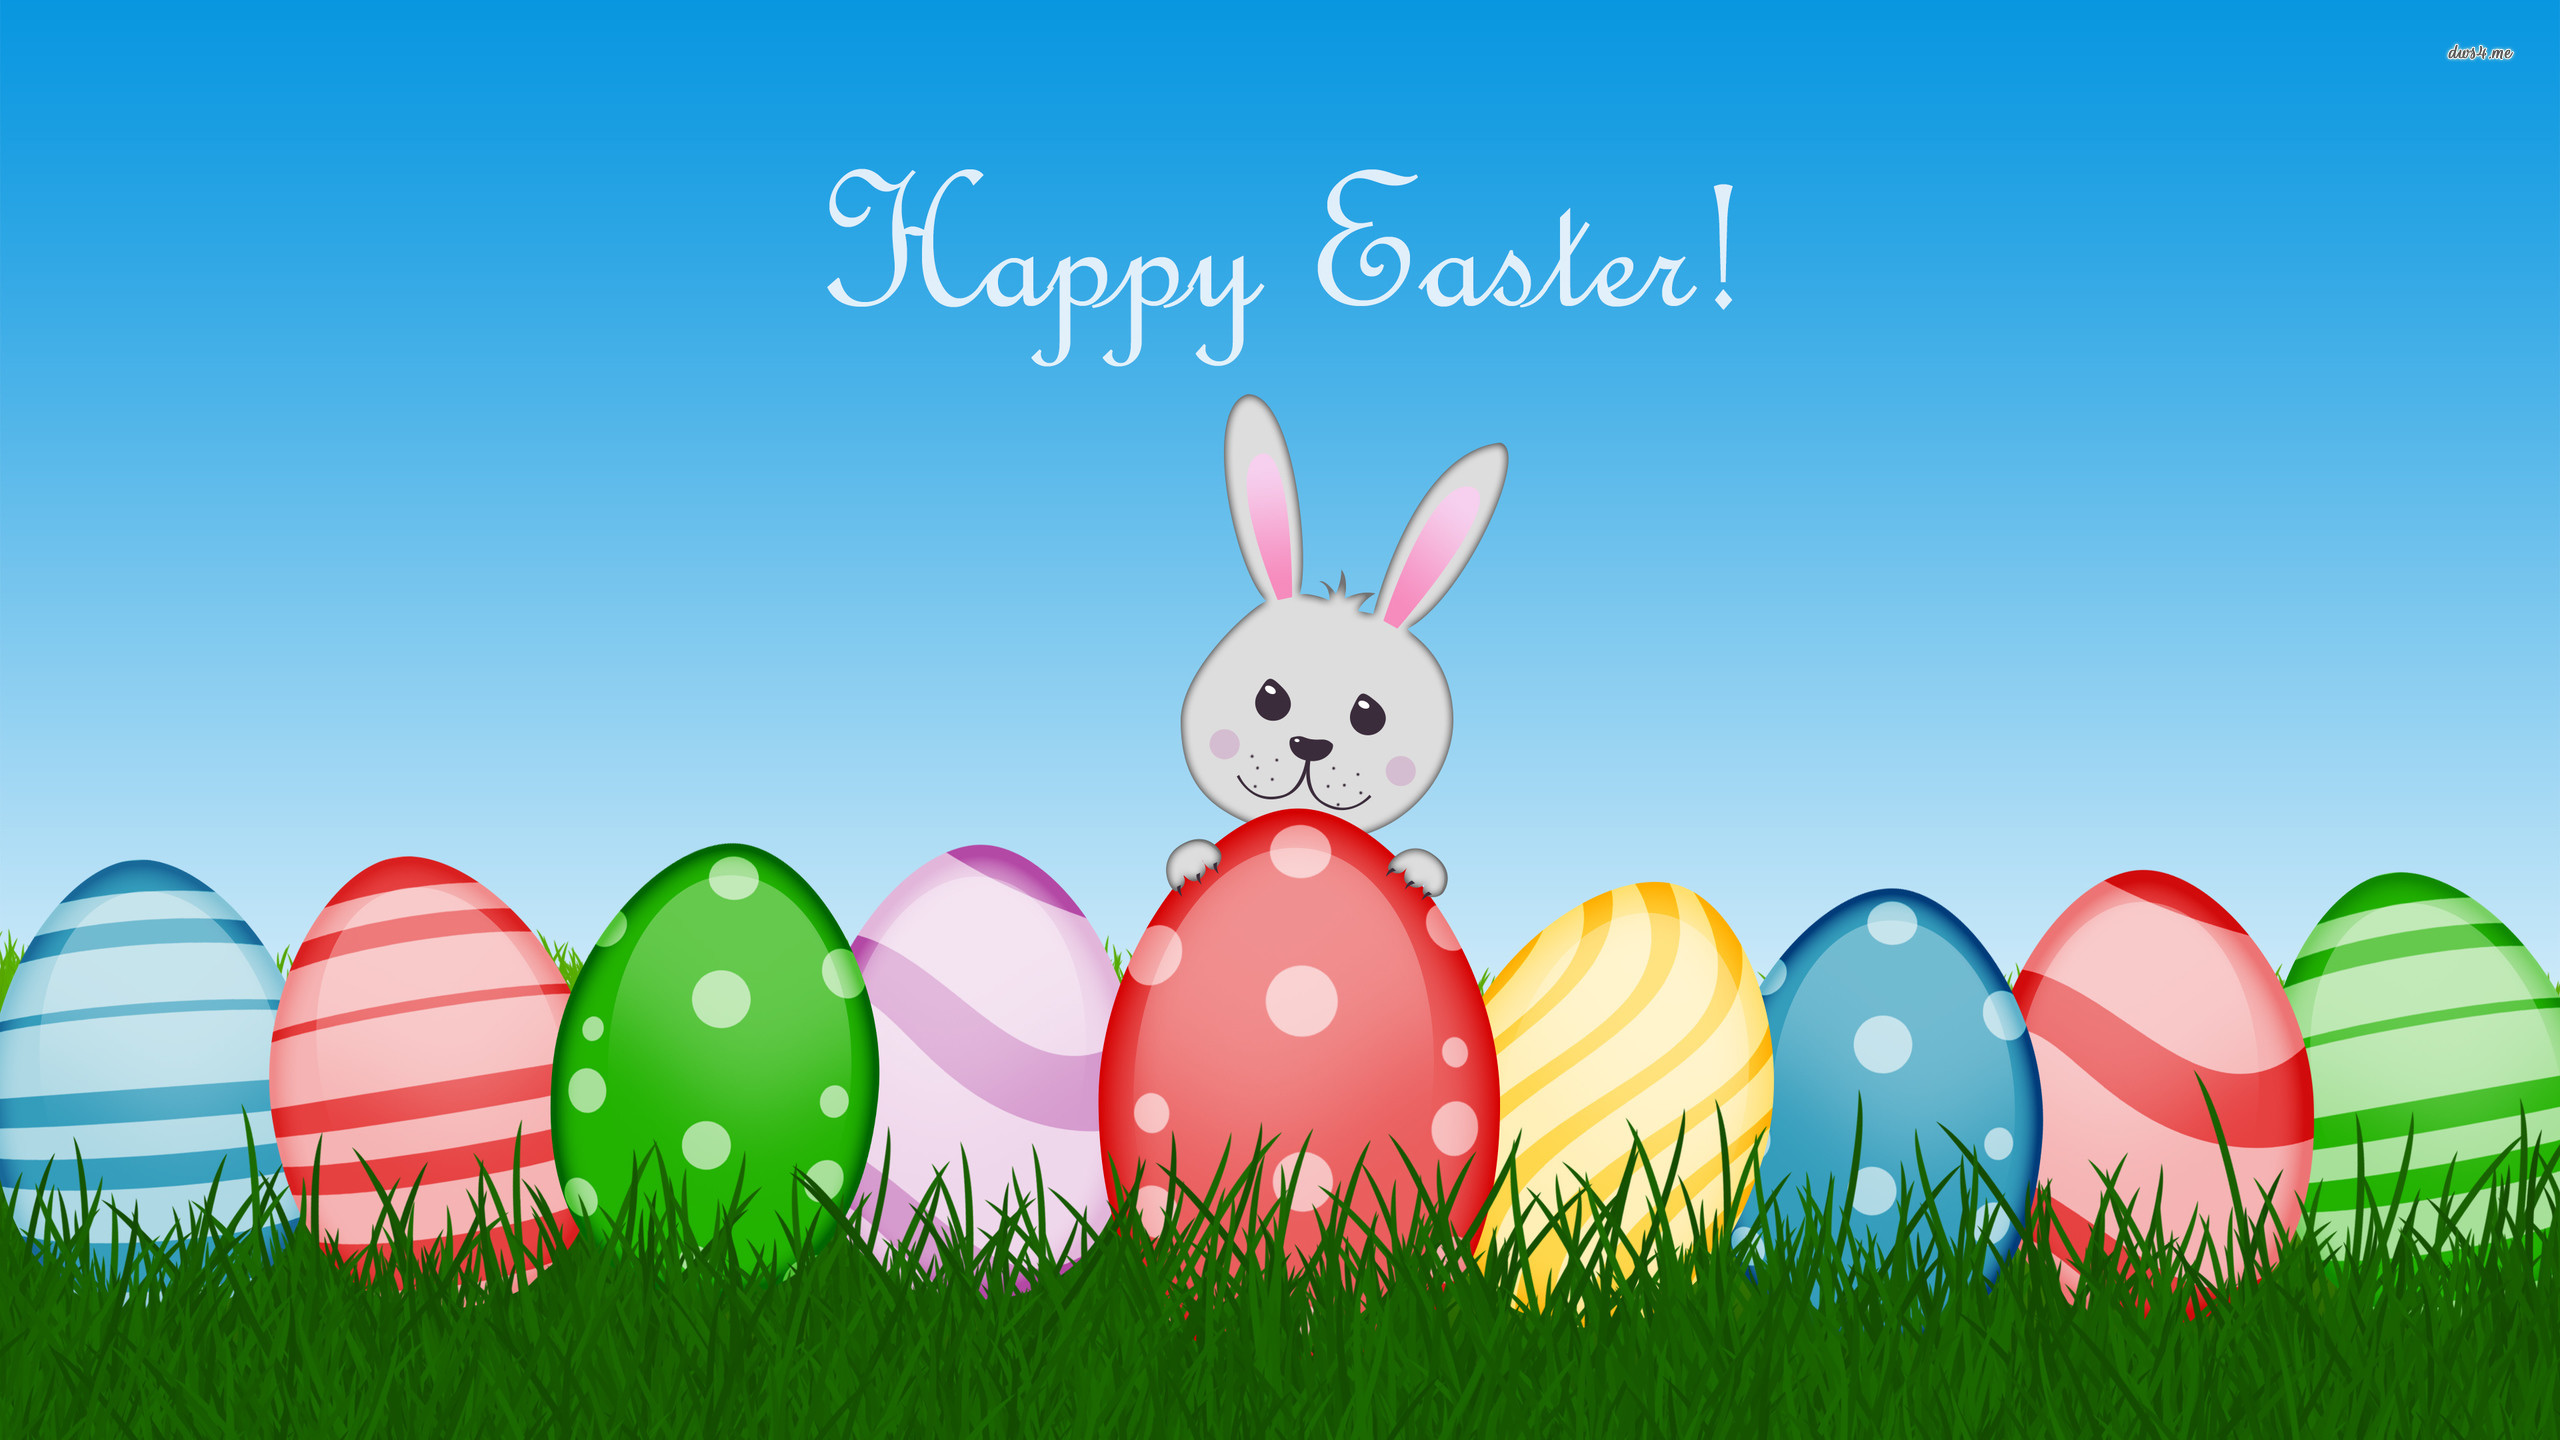 Wallpaper with bunnies 60 images - Easter bunny wallpaper ...